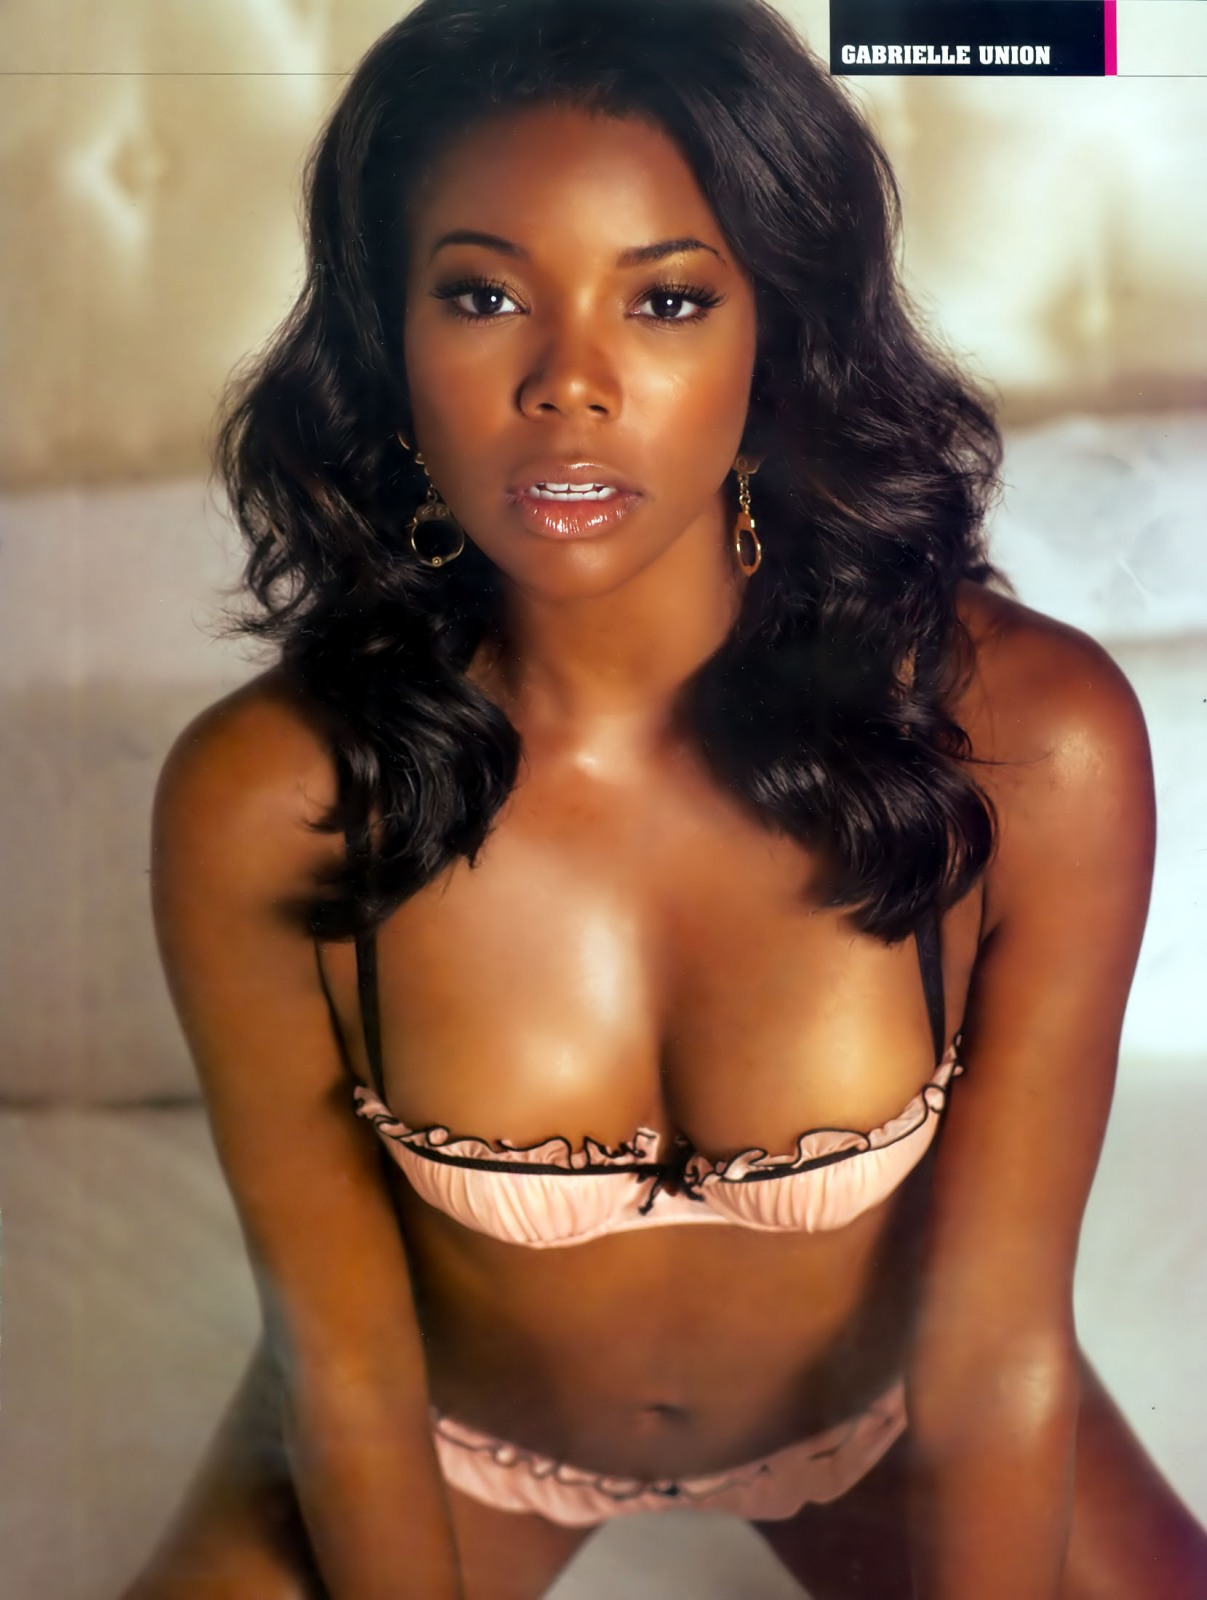 Nice wallpapers Gabrielle Union 1207x1600px